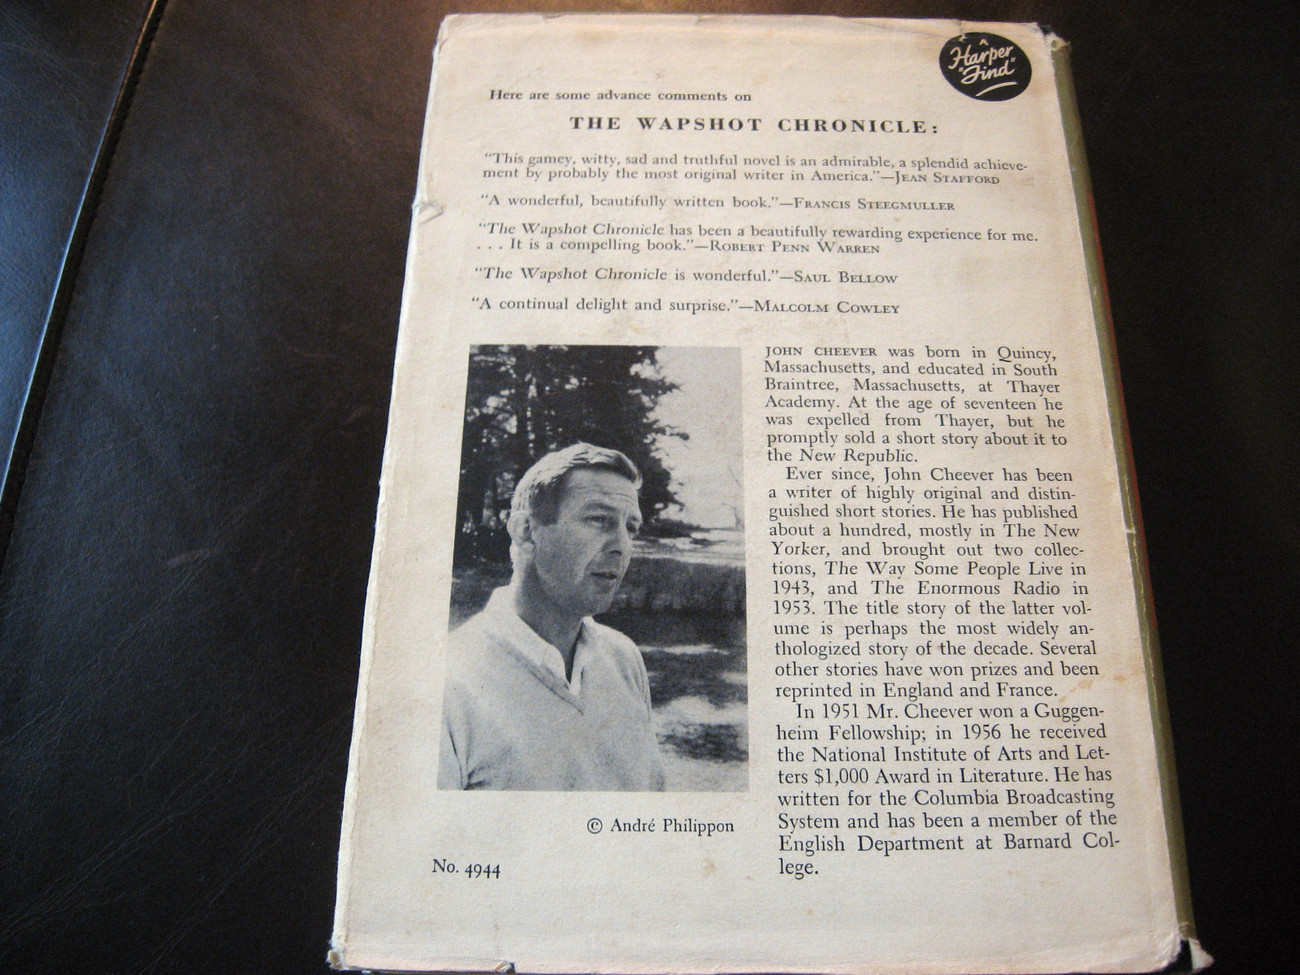 THE WAPSHOT CHRONICLE by JOHN CHEEVER ~~ 1957 Hardcover & Dust Jacket ~~